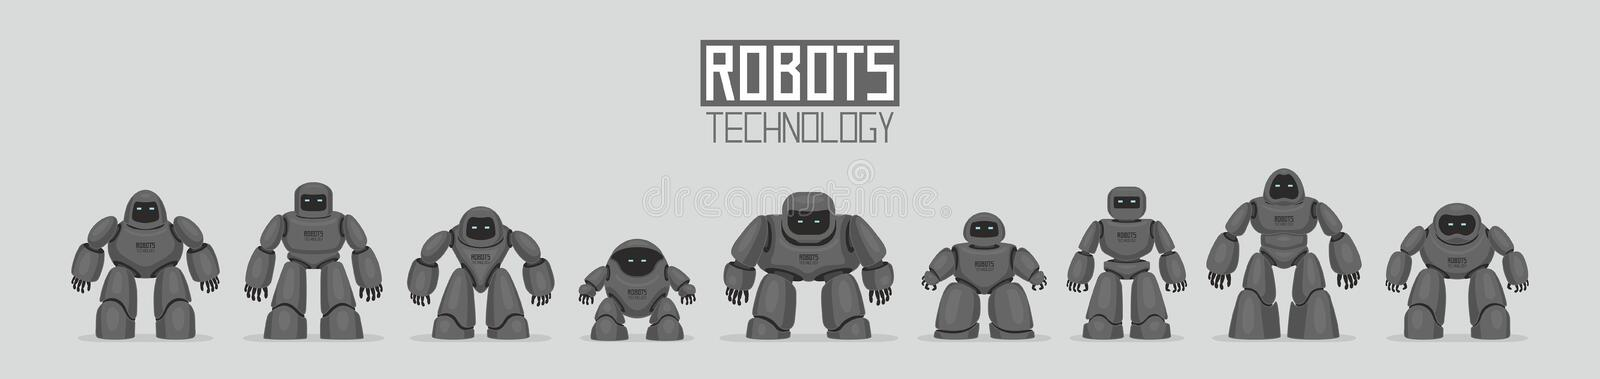 Background of Black Different Robots. Isolated on gray background vector illustration